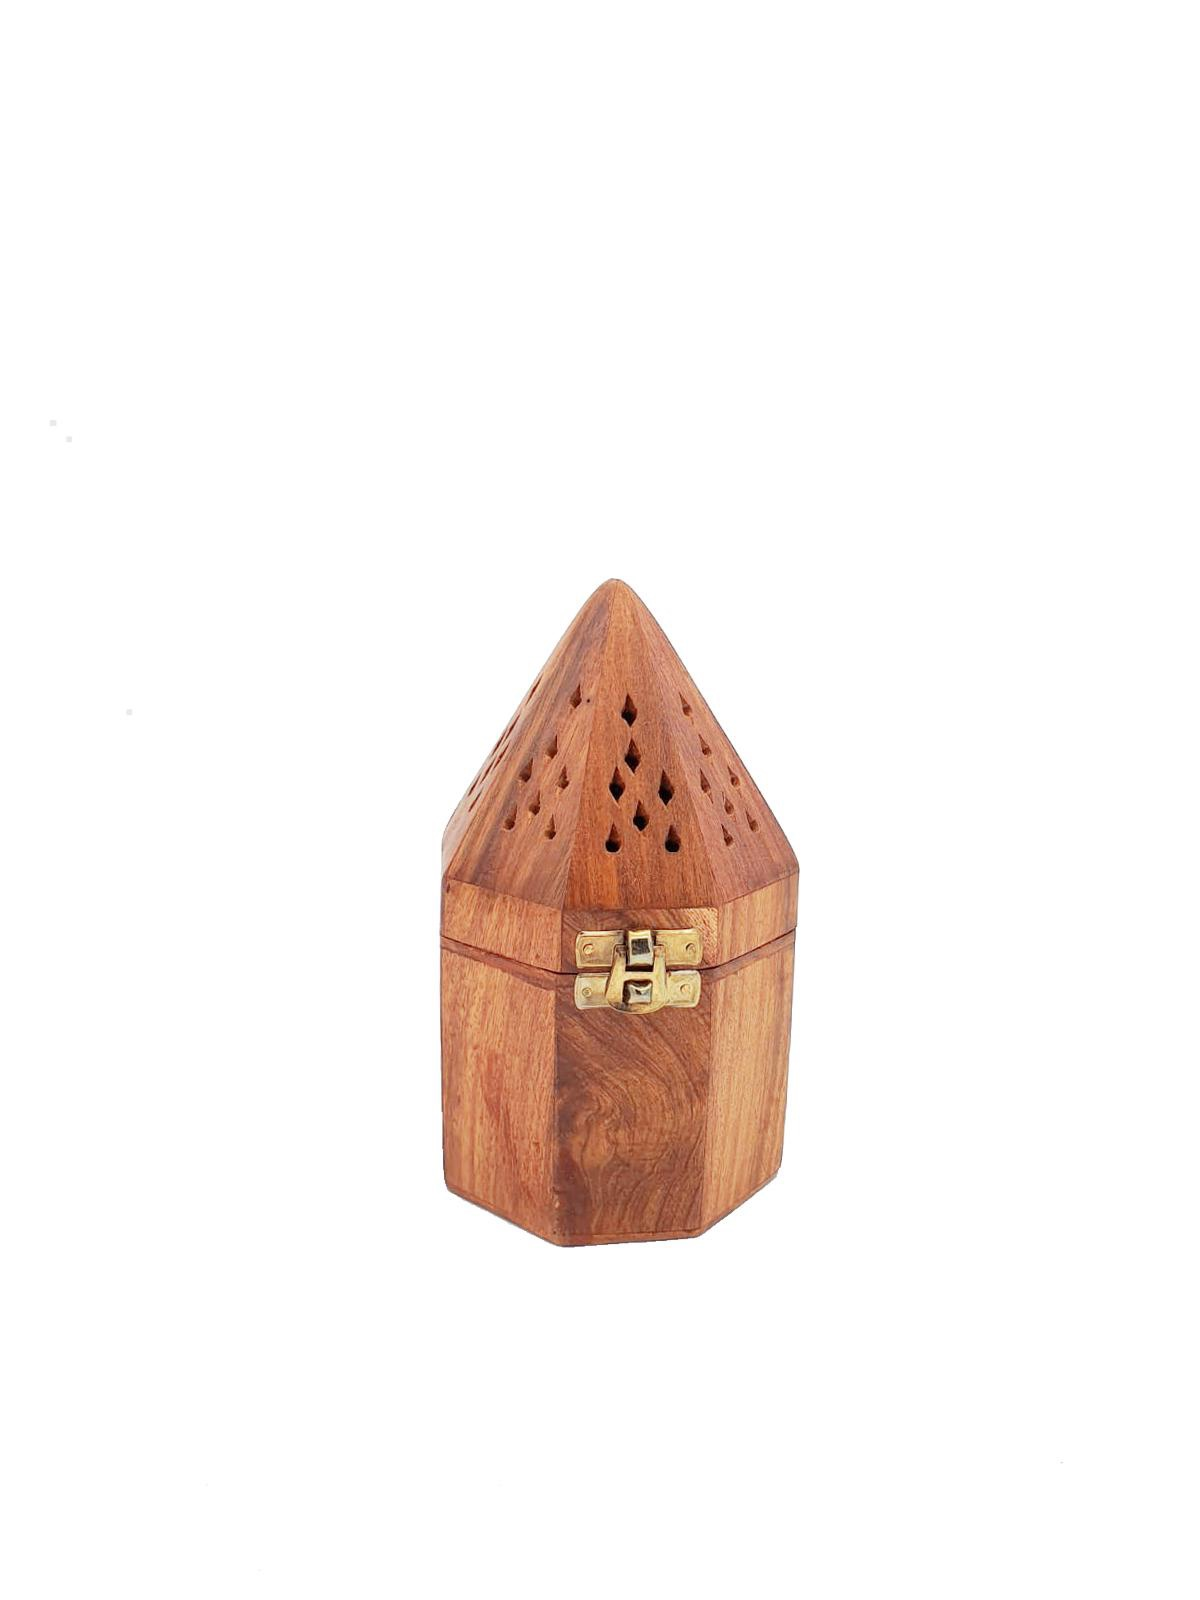 Buy Wooden Cone Incense Burner - Medium